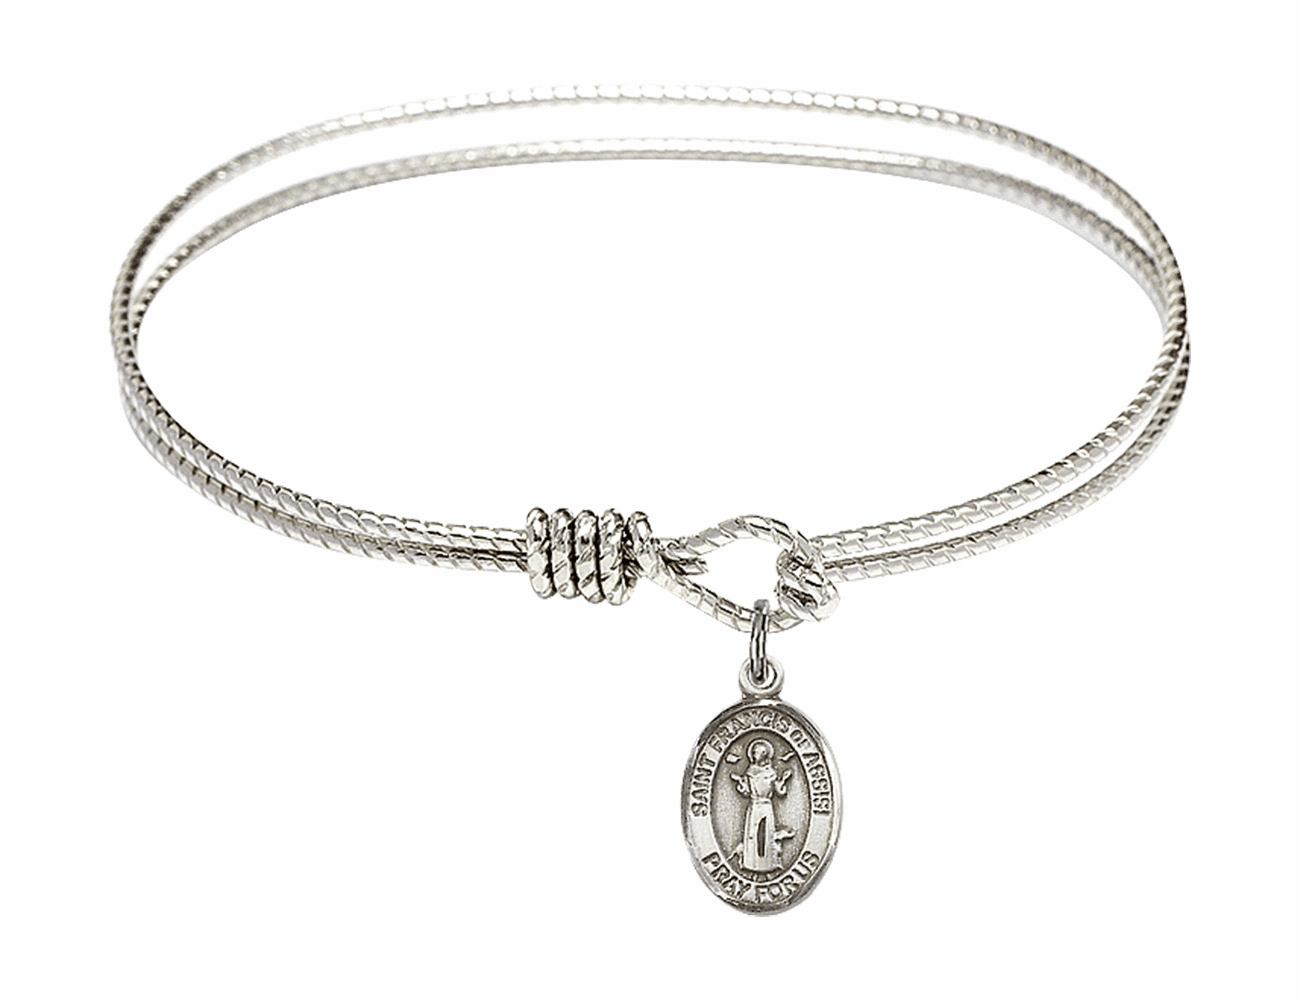 St Francis of Assisi Textured Bangle w/Sterling Charm Bracelet by Bliss